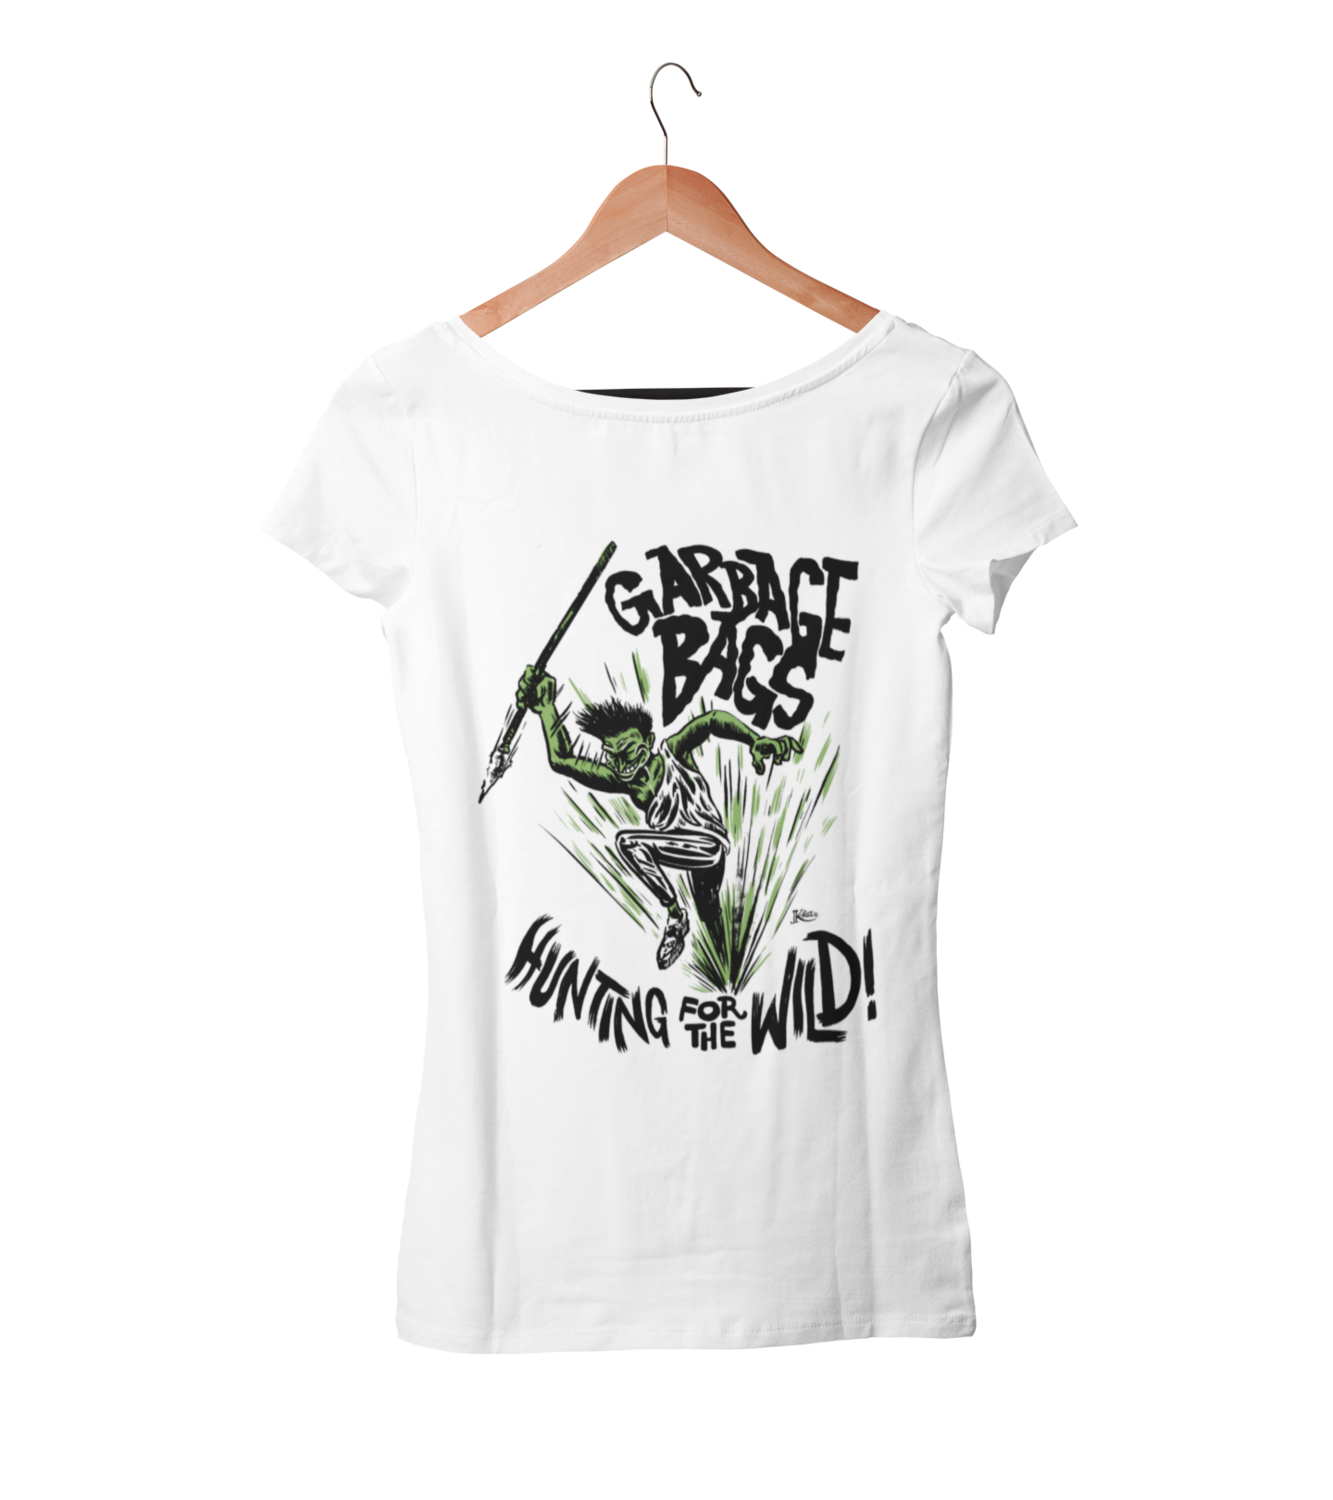 "GARBAGE BAGS ""Hunting for the wild"" T-SHIRT WOMEN"